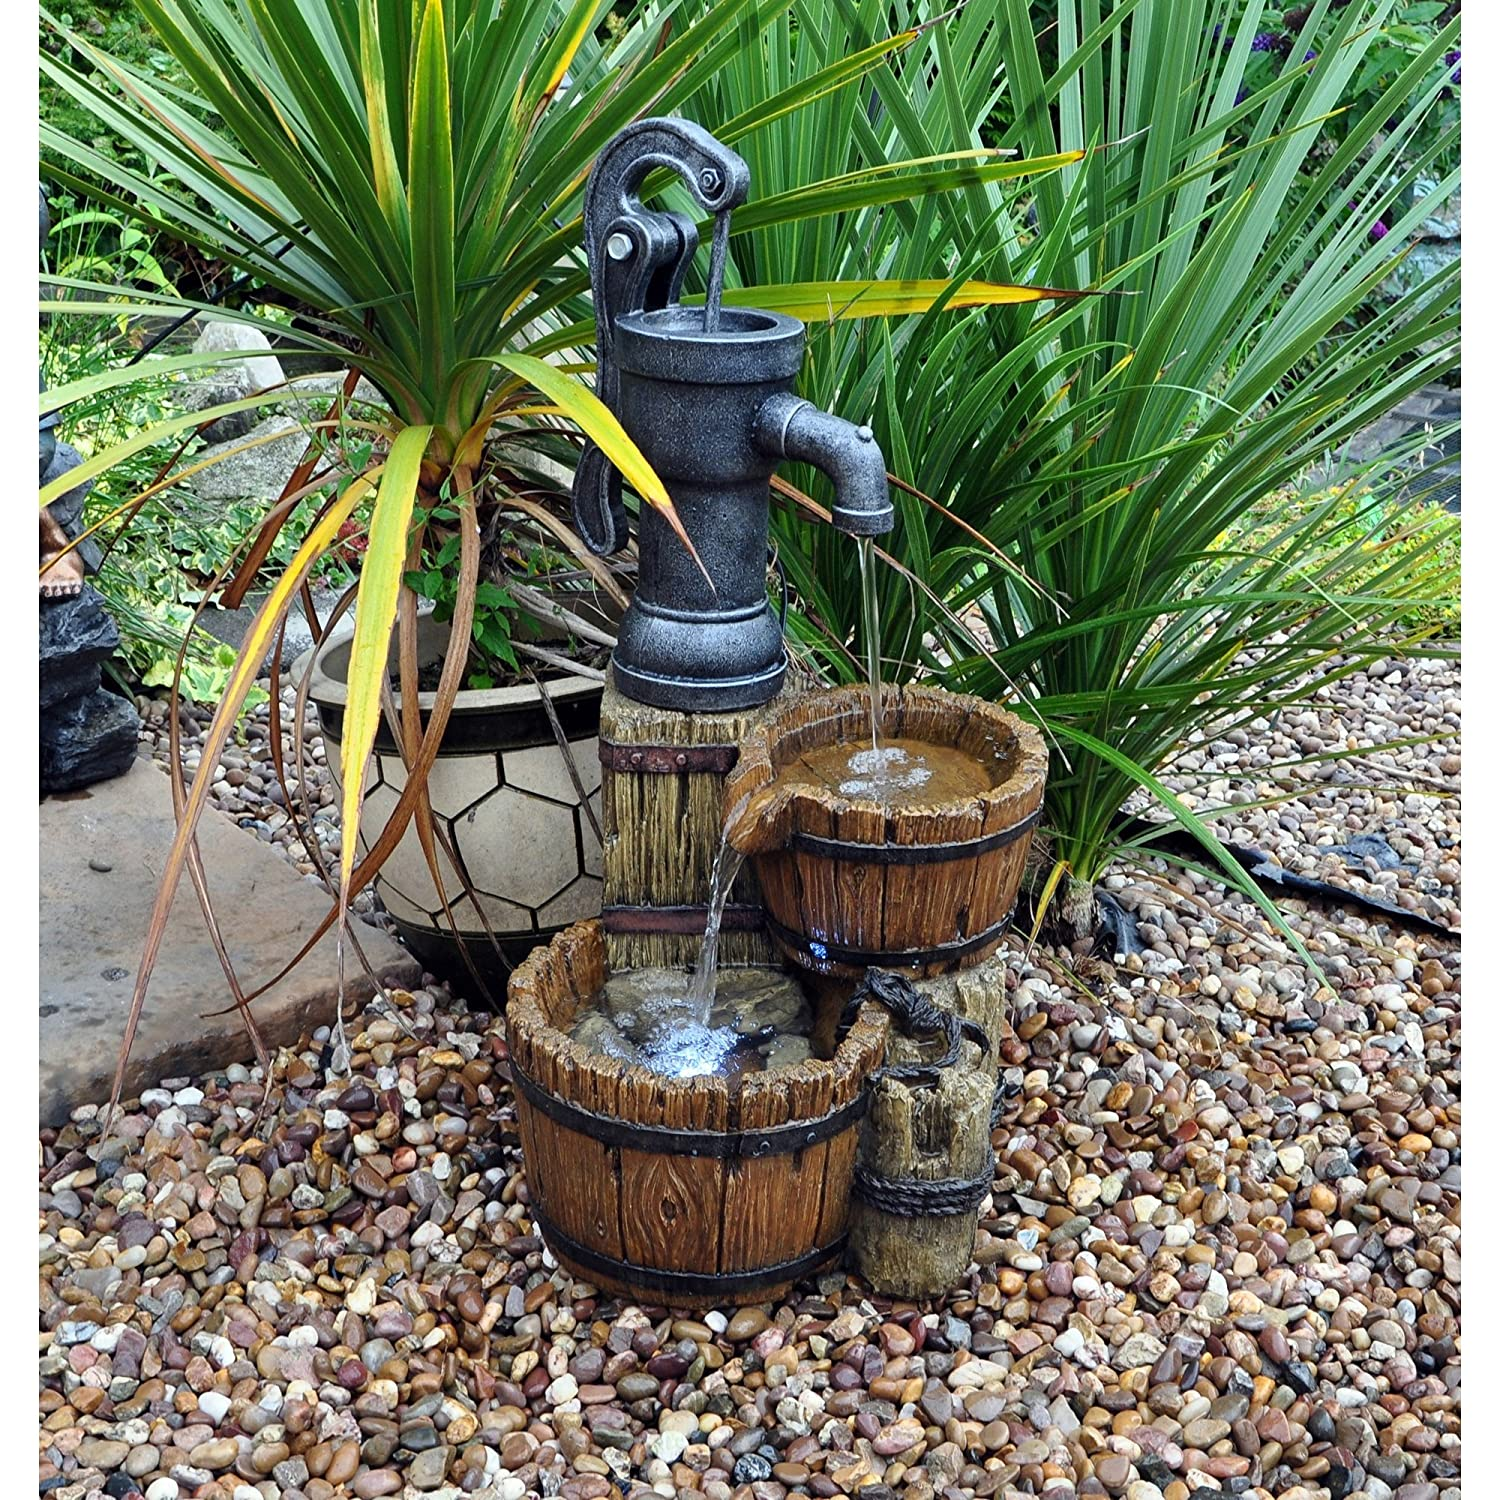 Kingfisher WF200 Twin Barrel and Hand Pump Garden Water Feature - Multi-Colour King Fisher